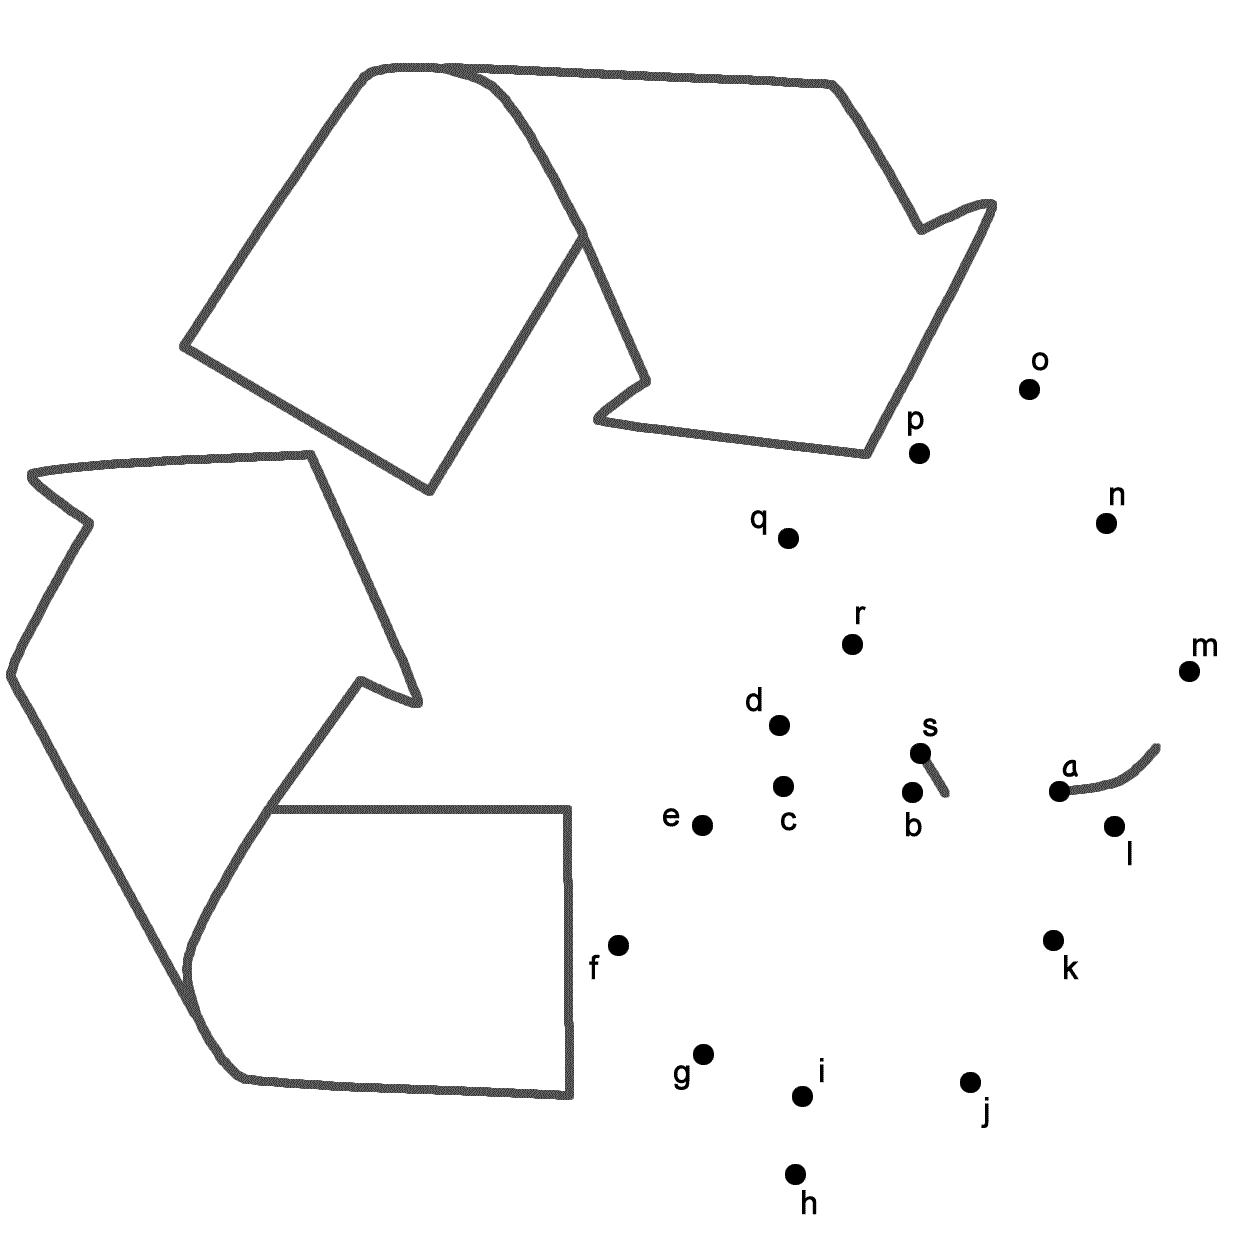 Recycle C Nect Dots By Lowerc Se Letters E Rth D Y